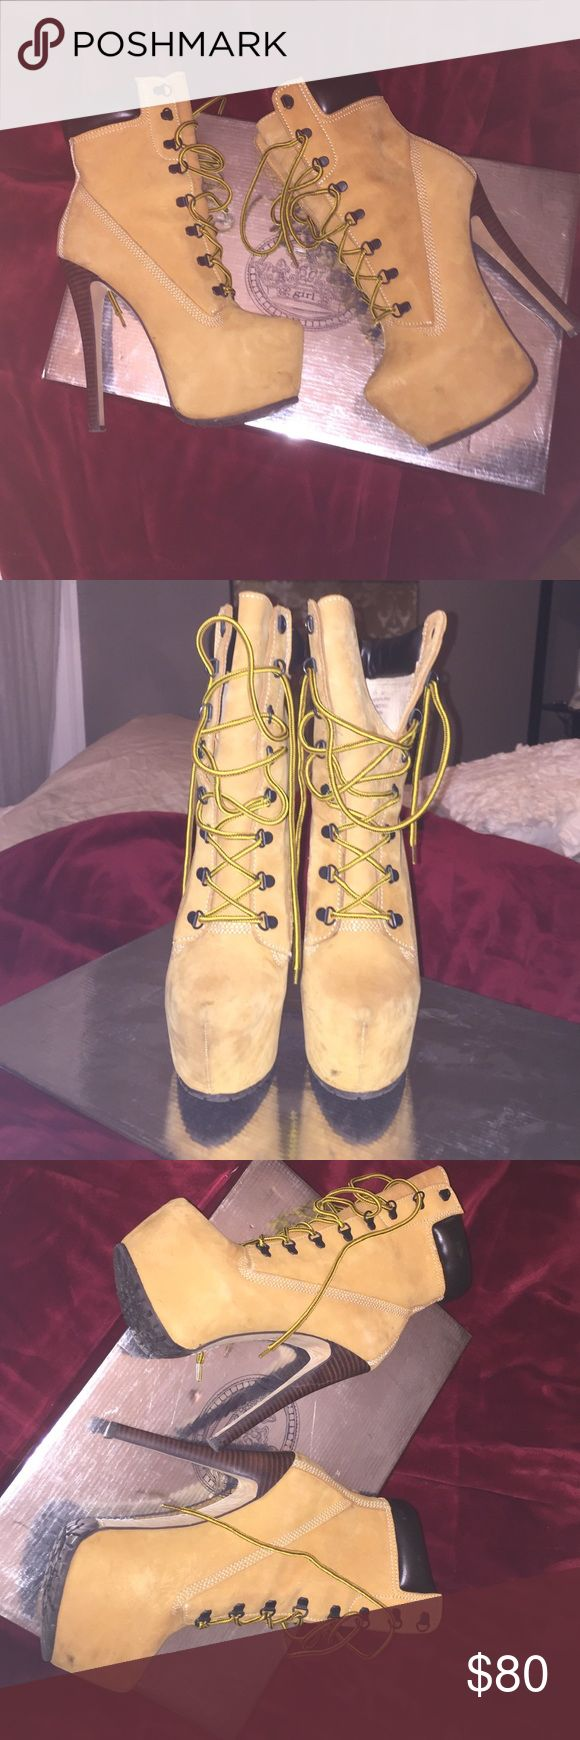 Zigi Girl Timberland Heel Wicked Fun Zigi Girl Timberland Heel - worn a couple of times, small scuffs on the suede, but nothing crazy!  Still in great condition! Zigi Soho Shoes Lace Up Boots